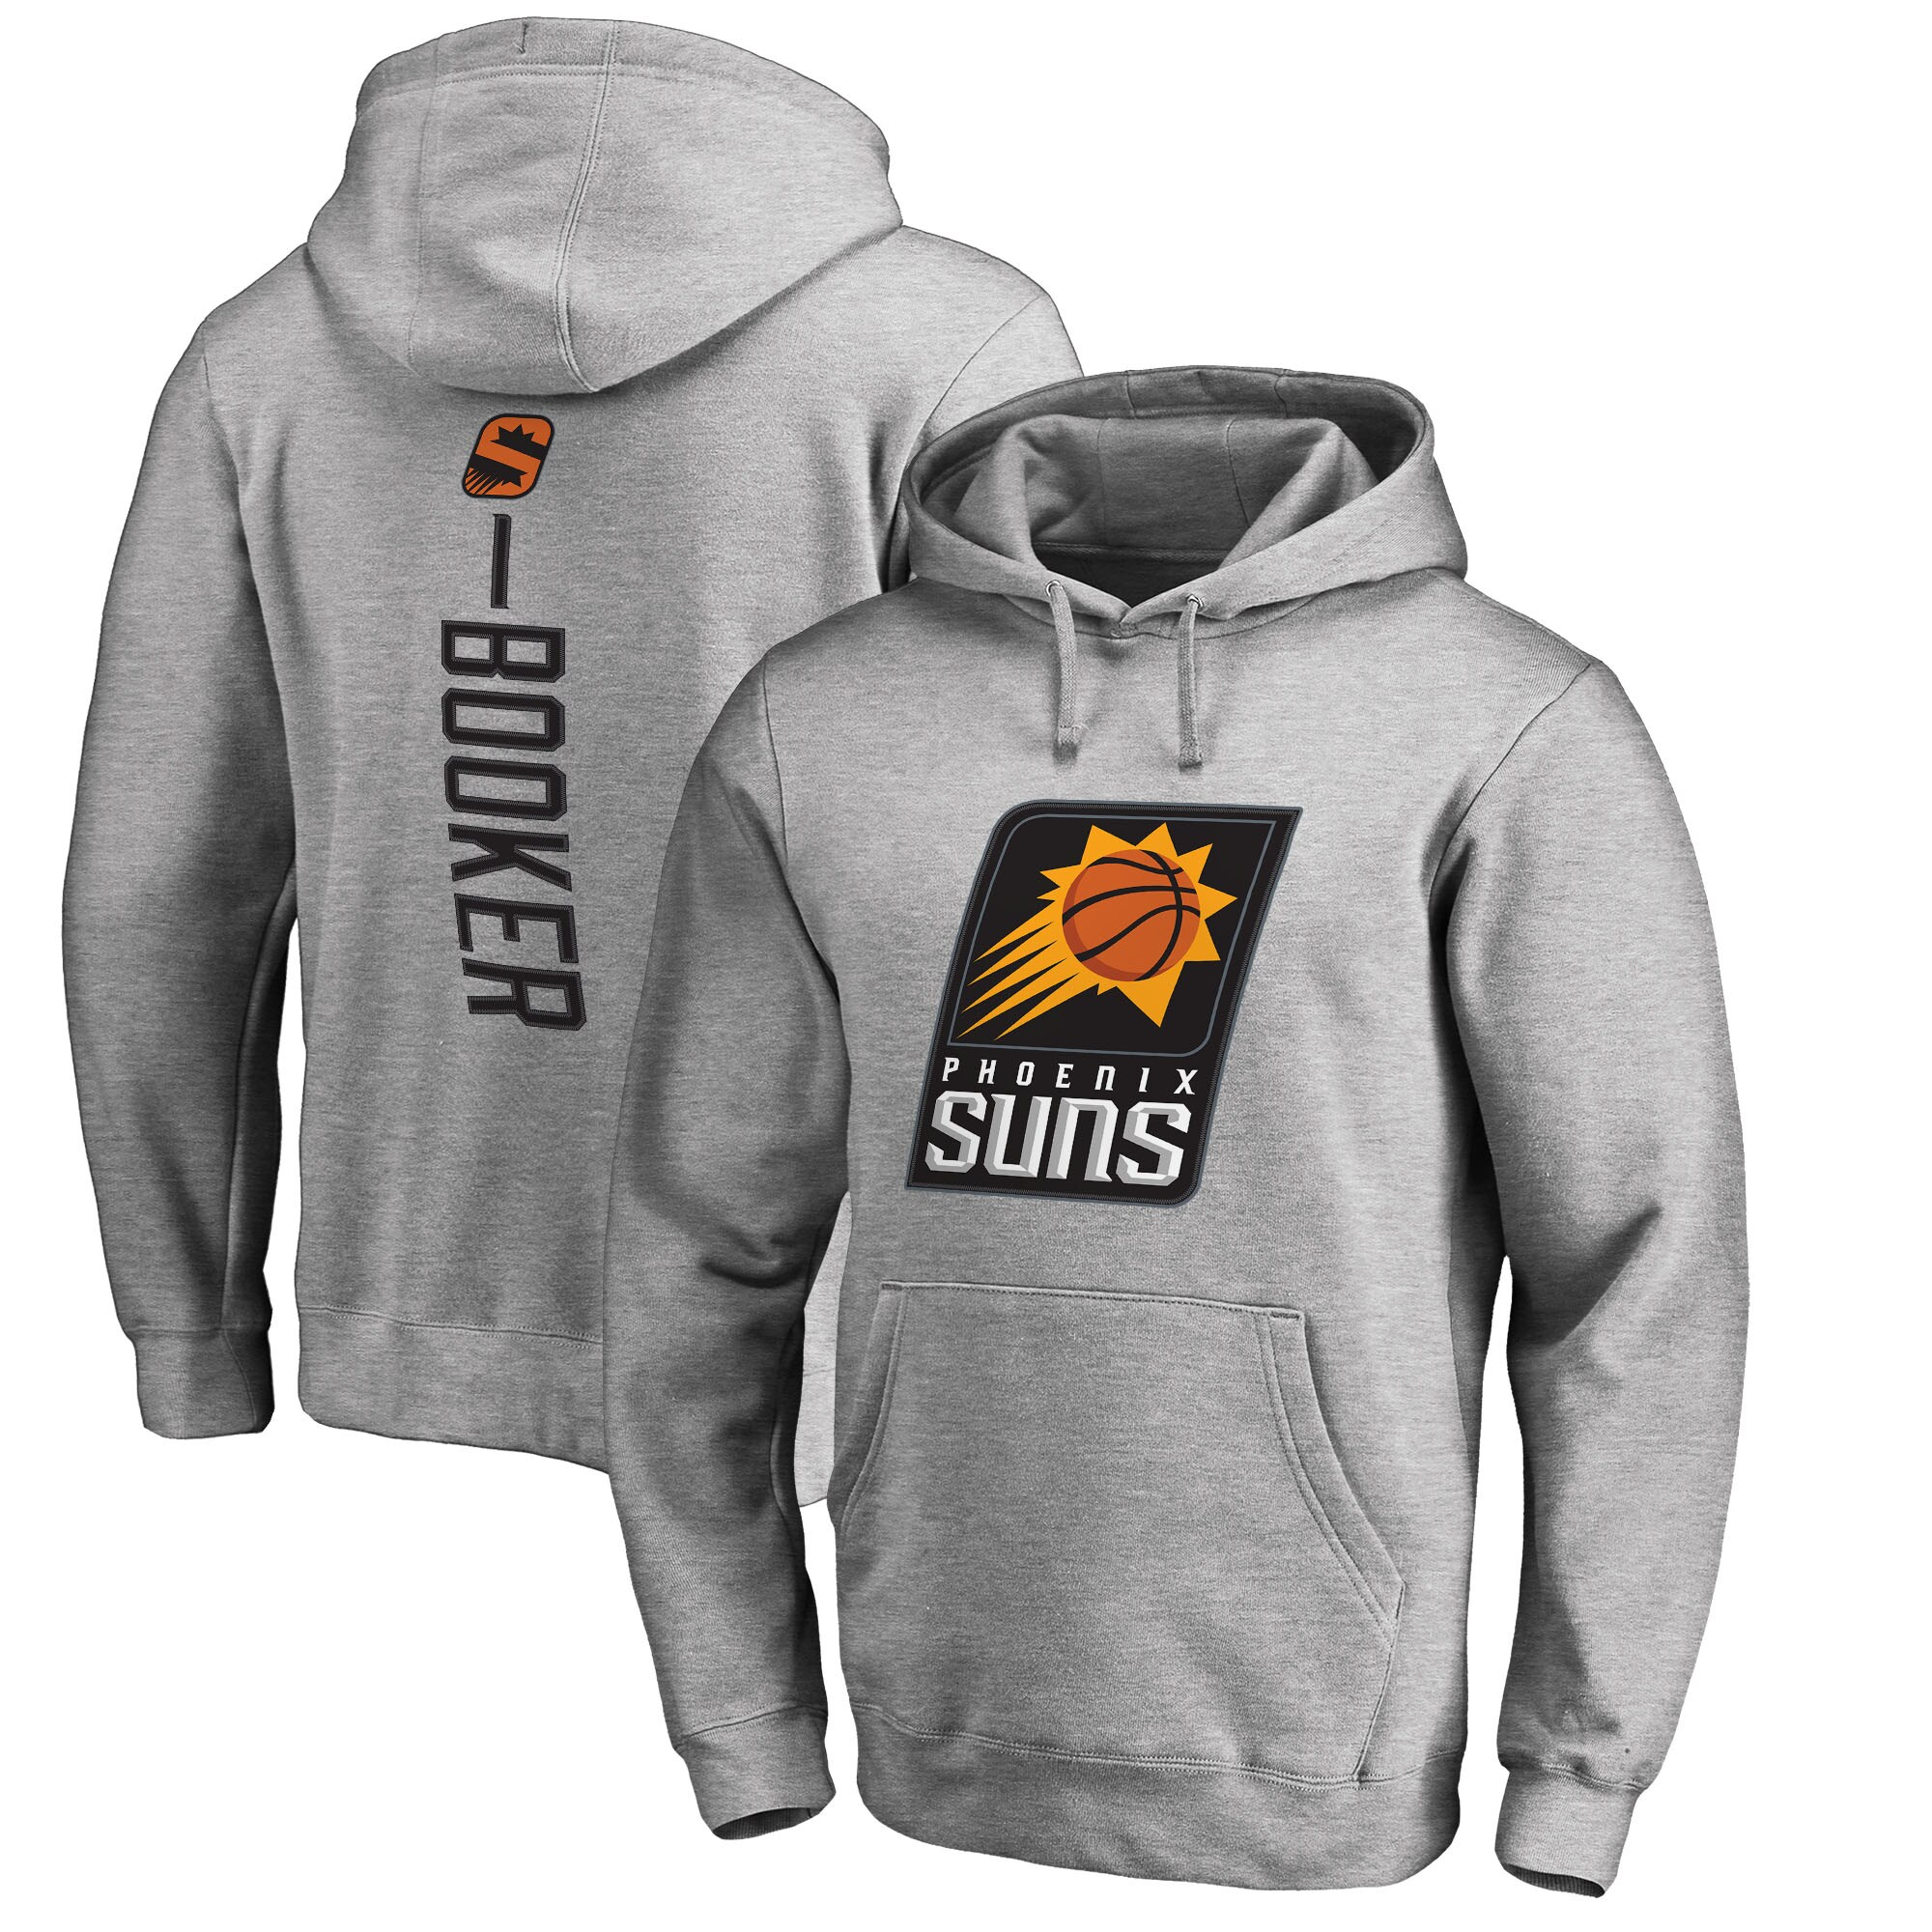 Devin Booker Phoenix Suns Fanatics Branded Backer Name & Number Pullover Hoodie - Gray